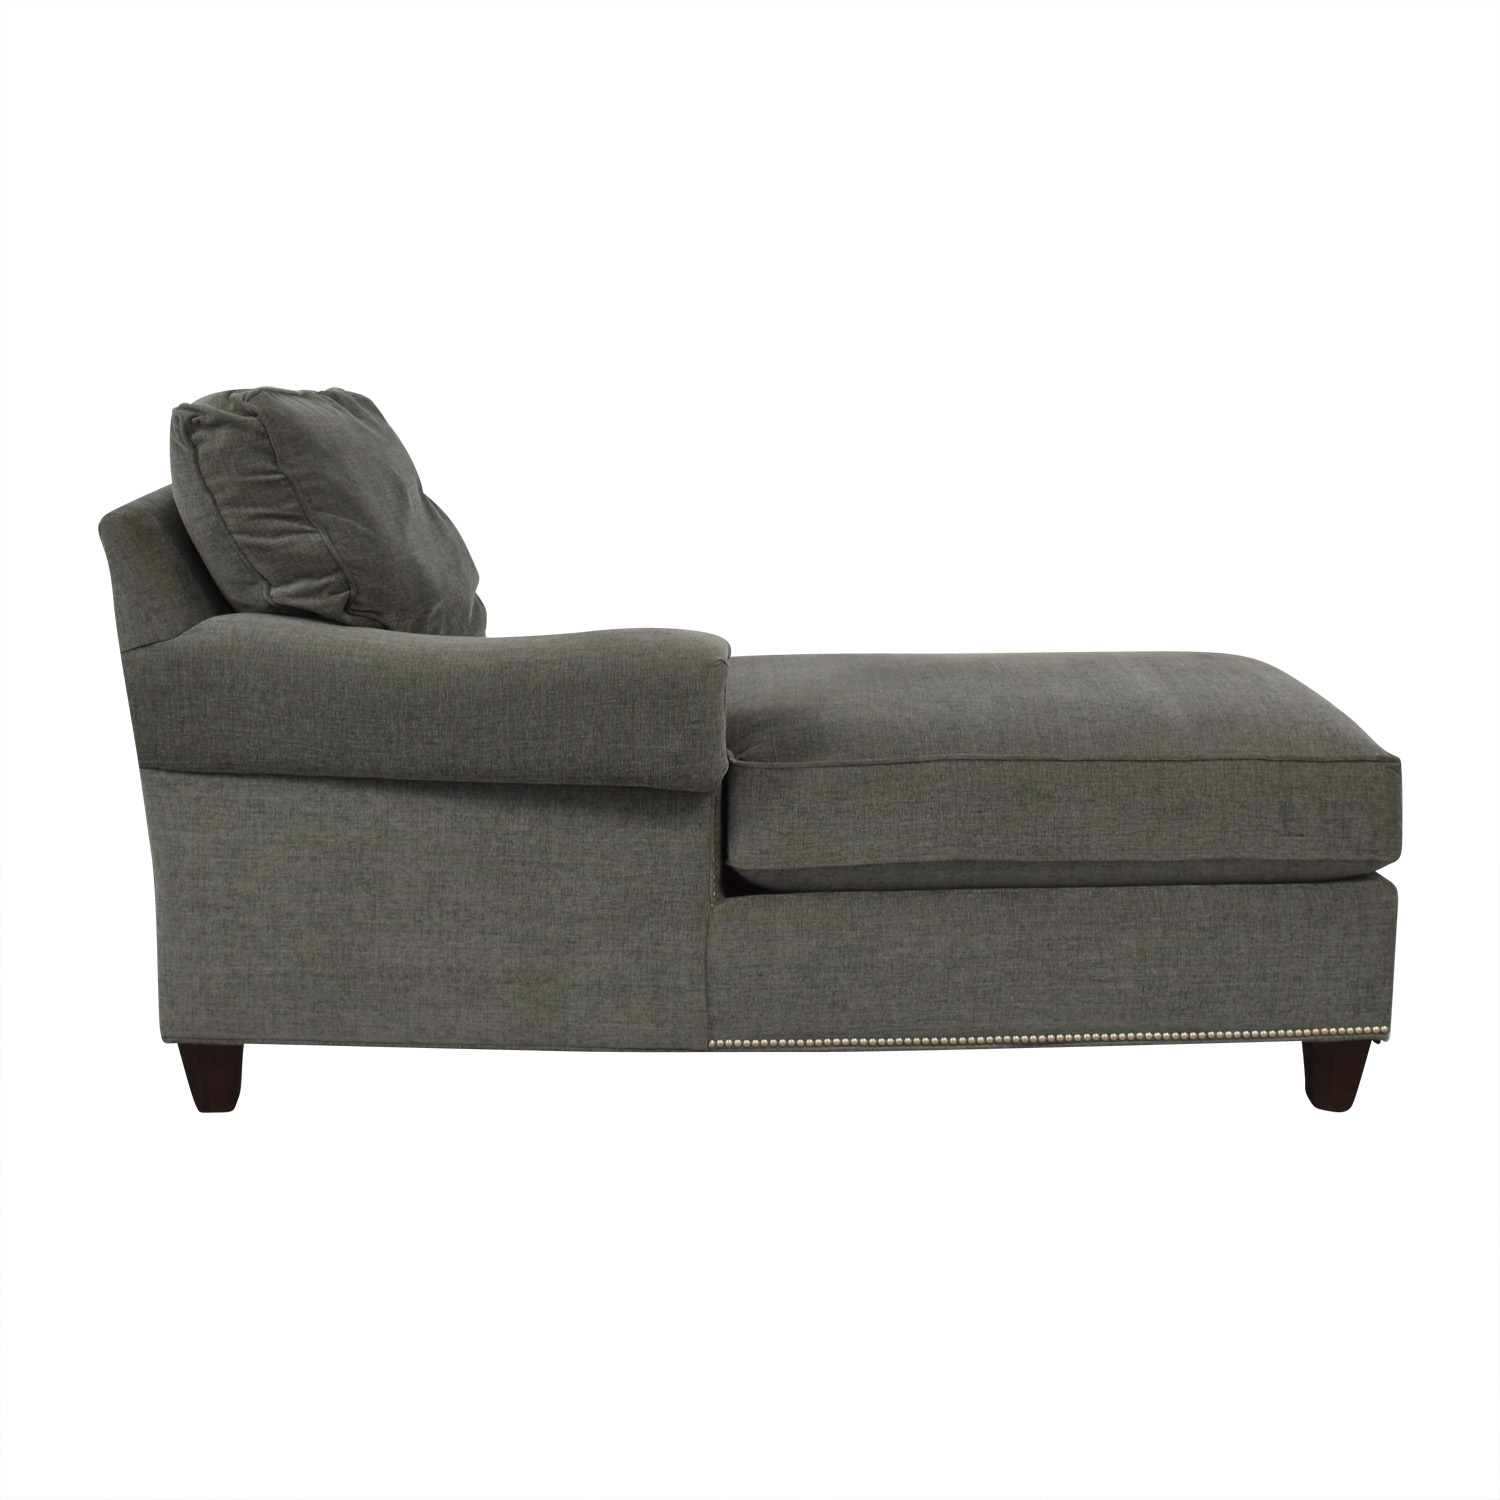 shop Bassett Furniture Bassett Furniture Chaise online